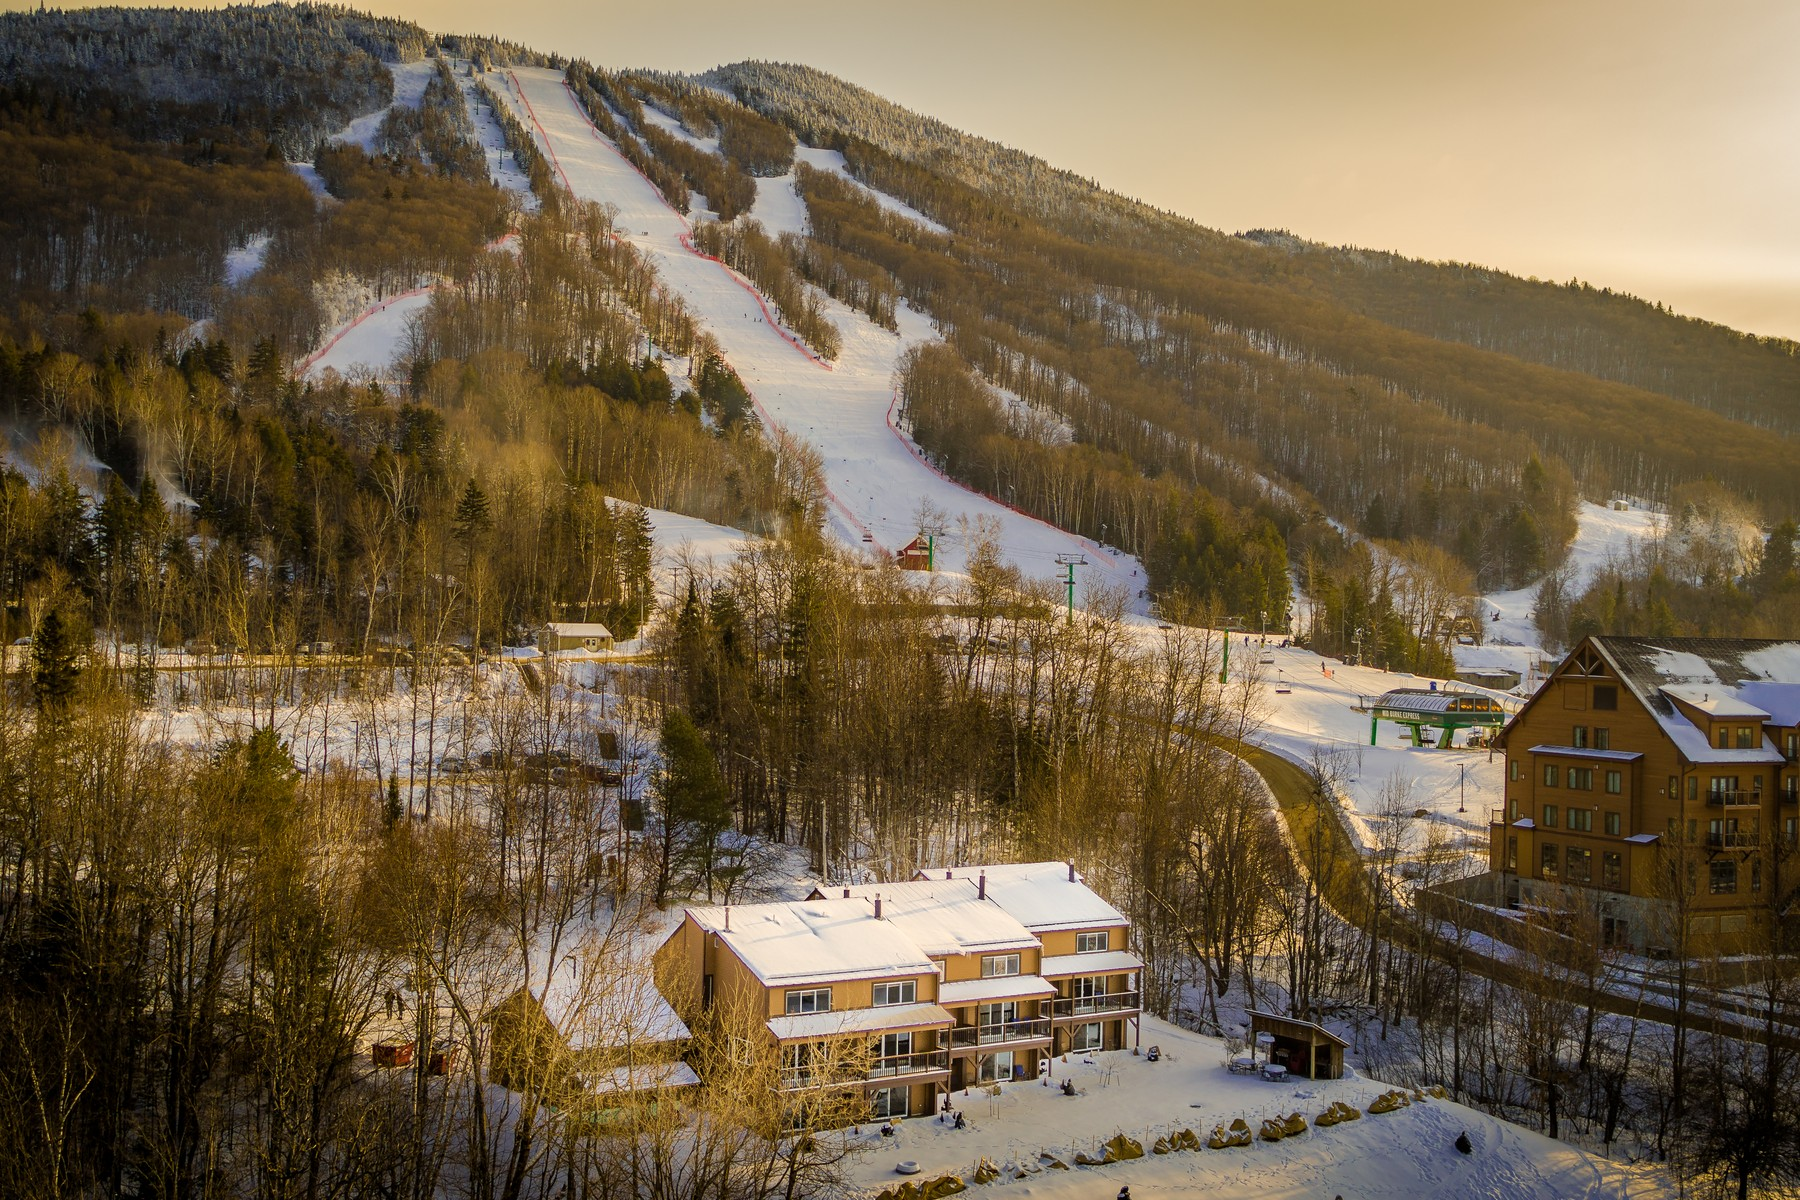 Single Family Home for Sale at Burke Mountain Resort Condominium 2426 Mountain Rd 1 Burke, Vermont 05832 United States